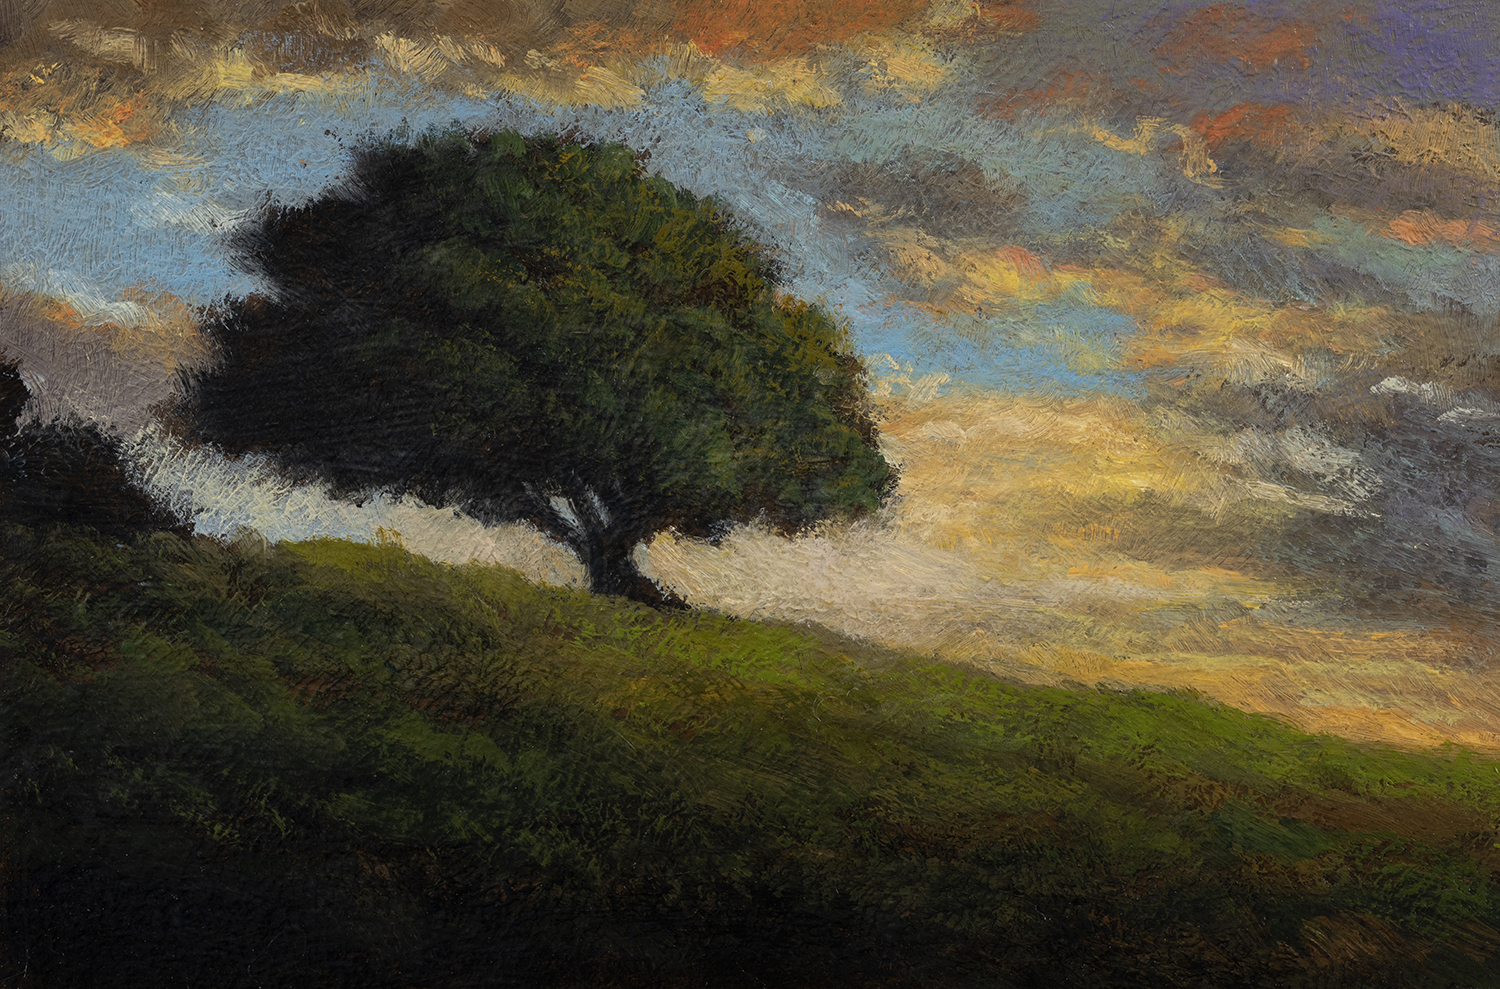 Nearing Twilight by M Francis McCarthy - 4x6 Oil on Wood Panel